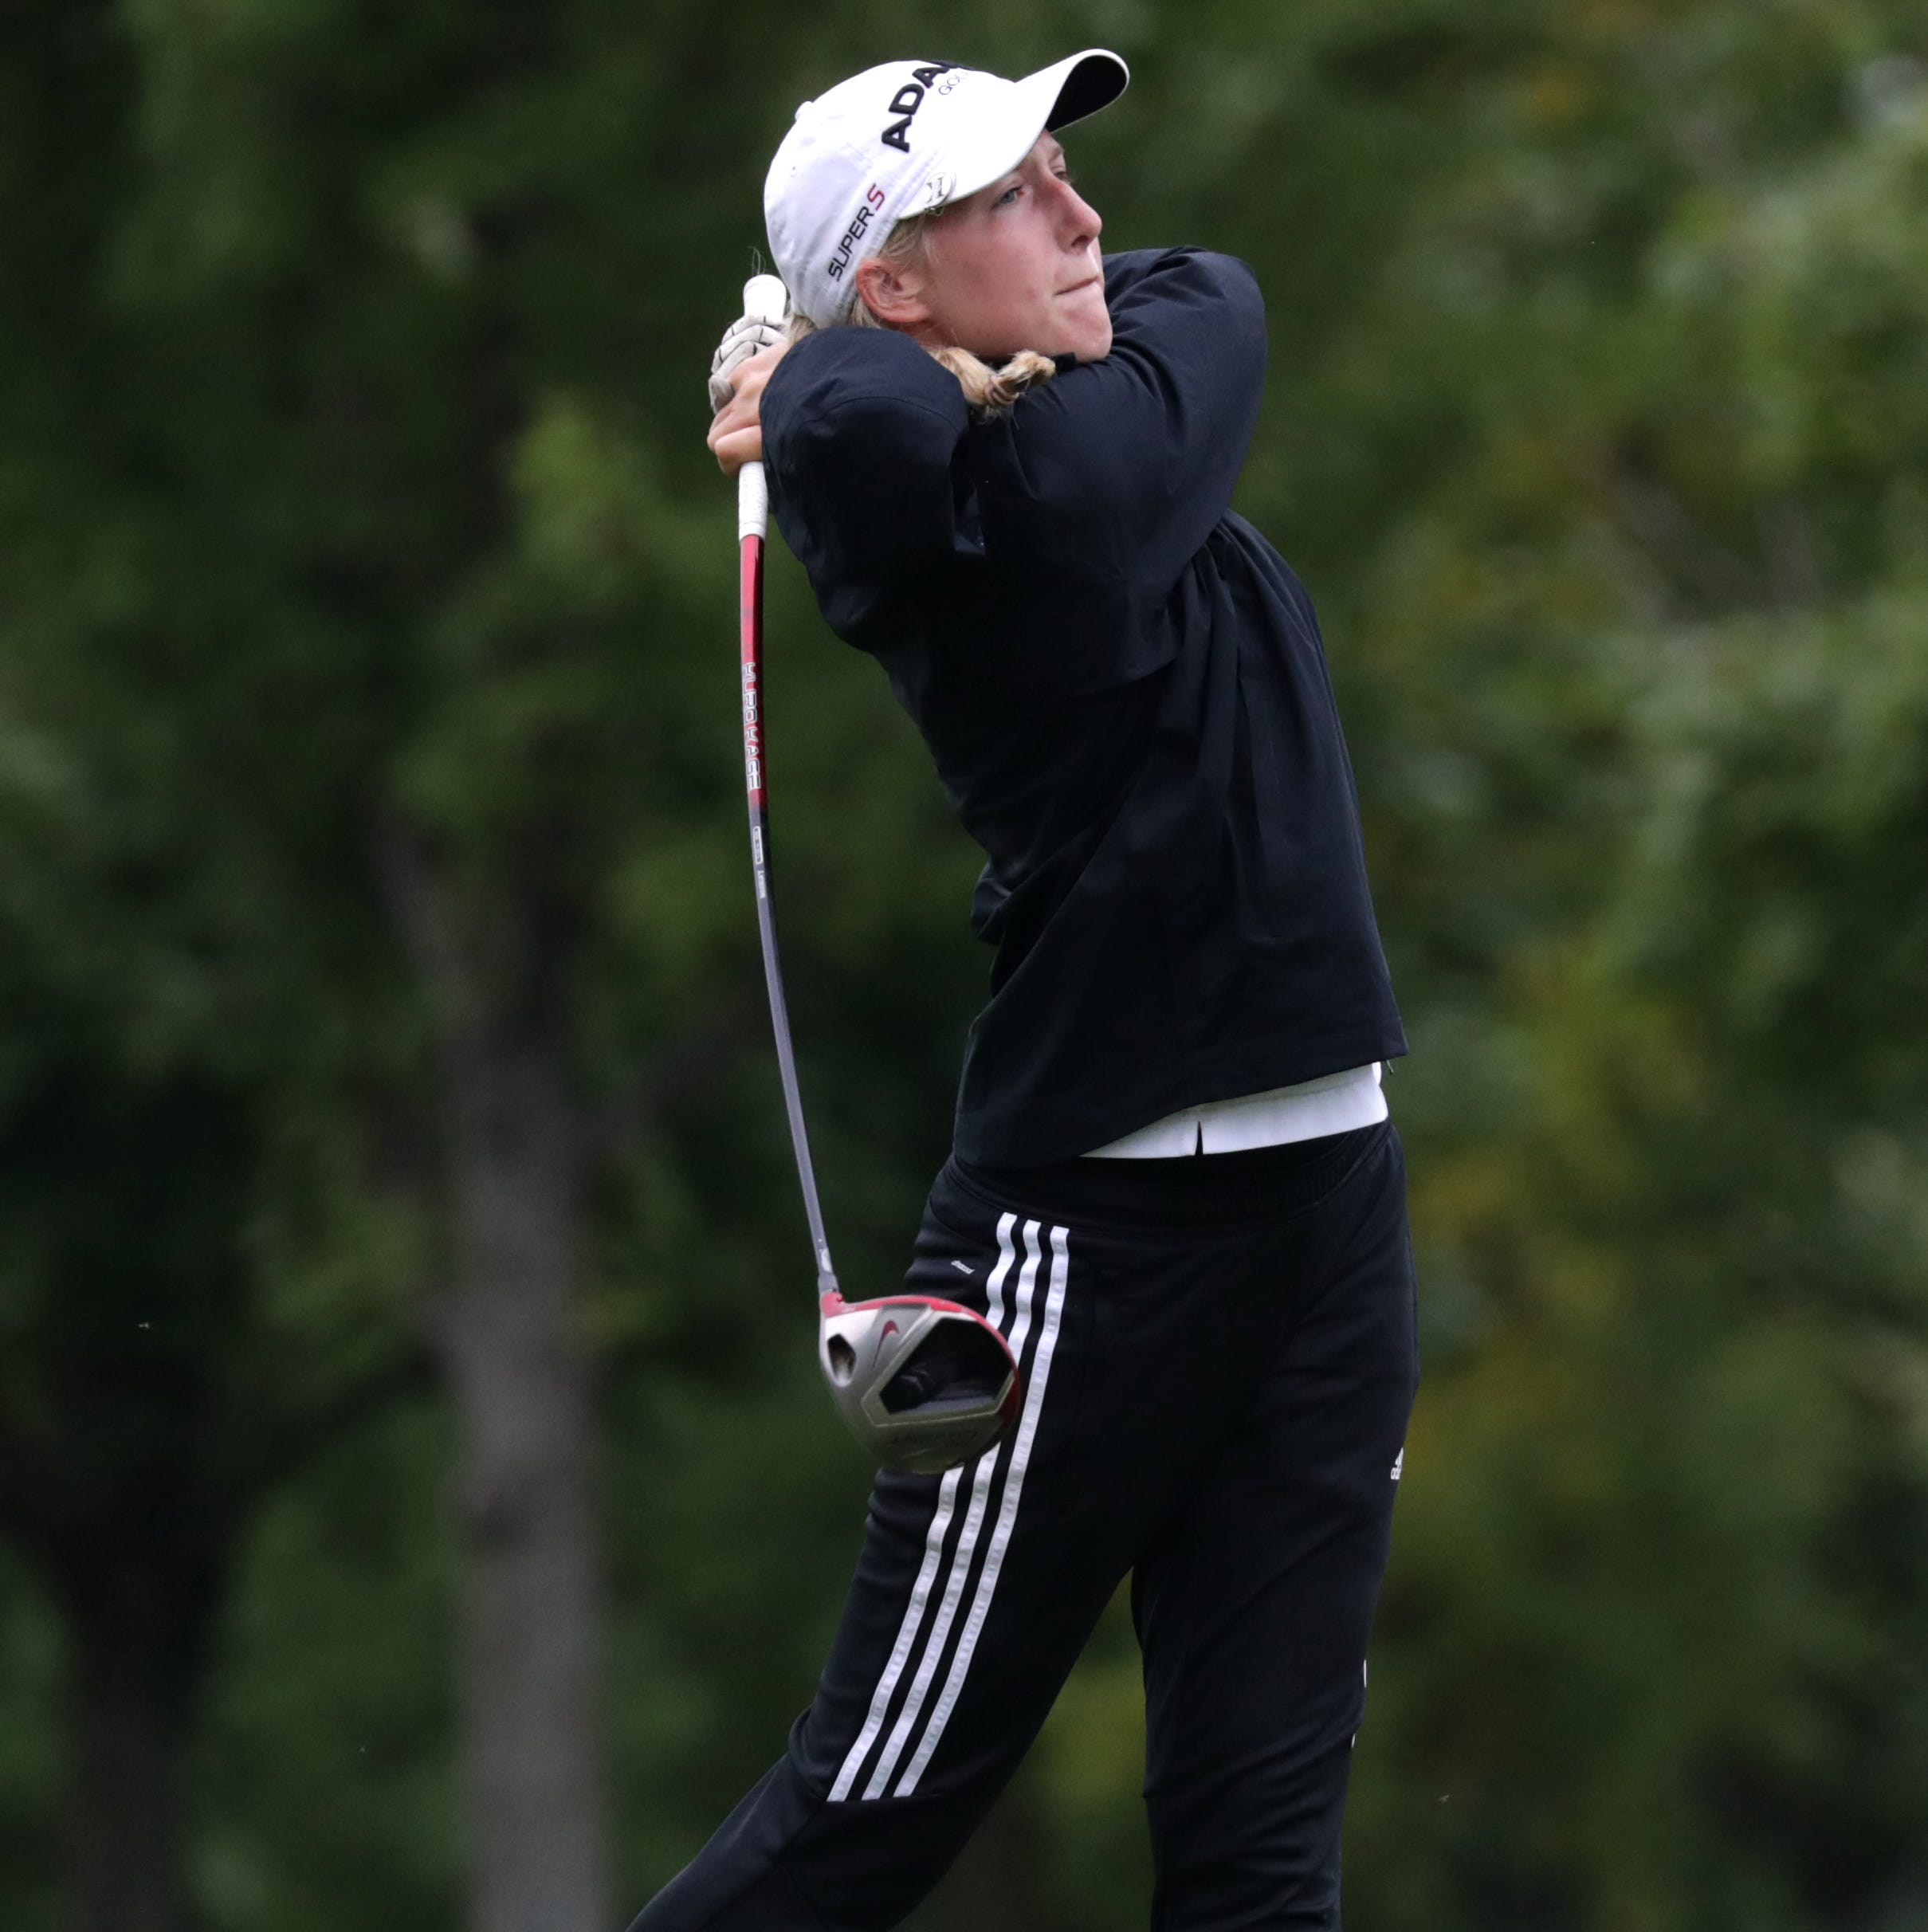 Kaukauna, Moore place first at FVA conference golf tournament